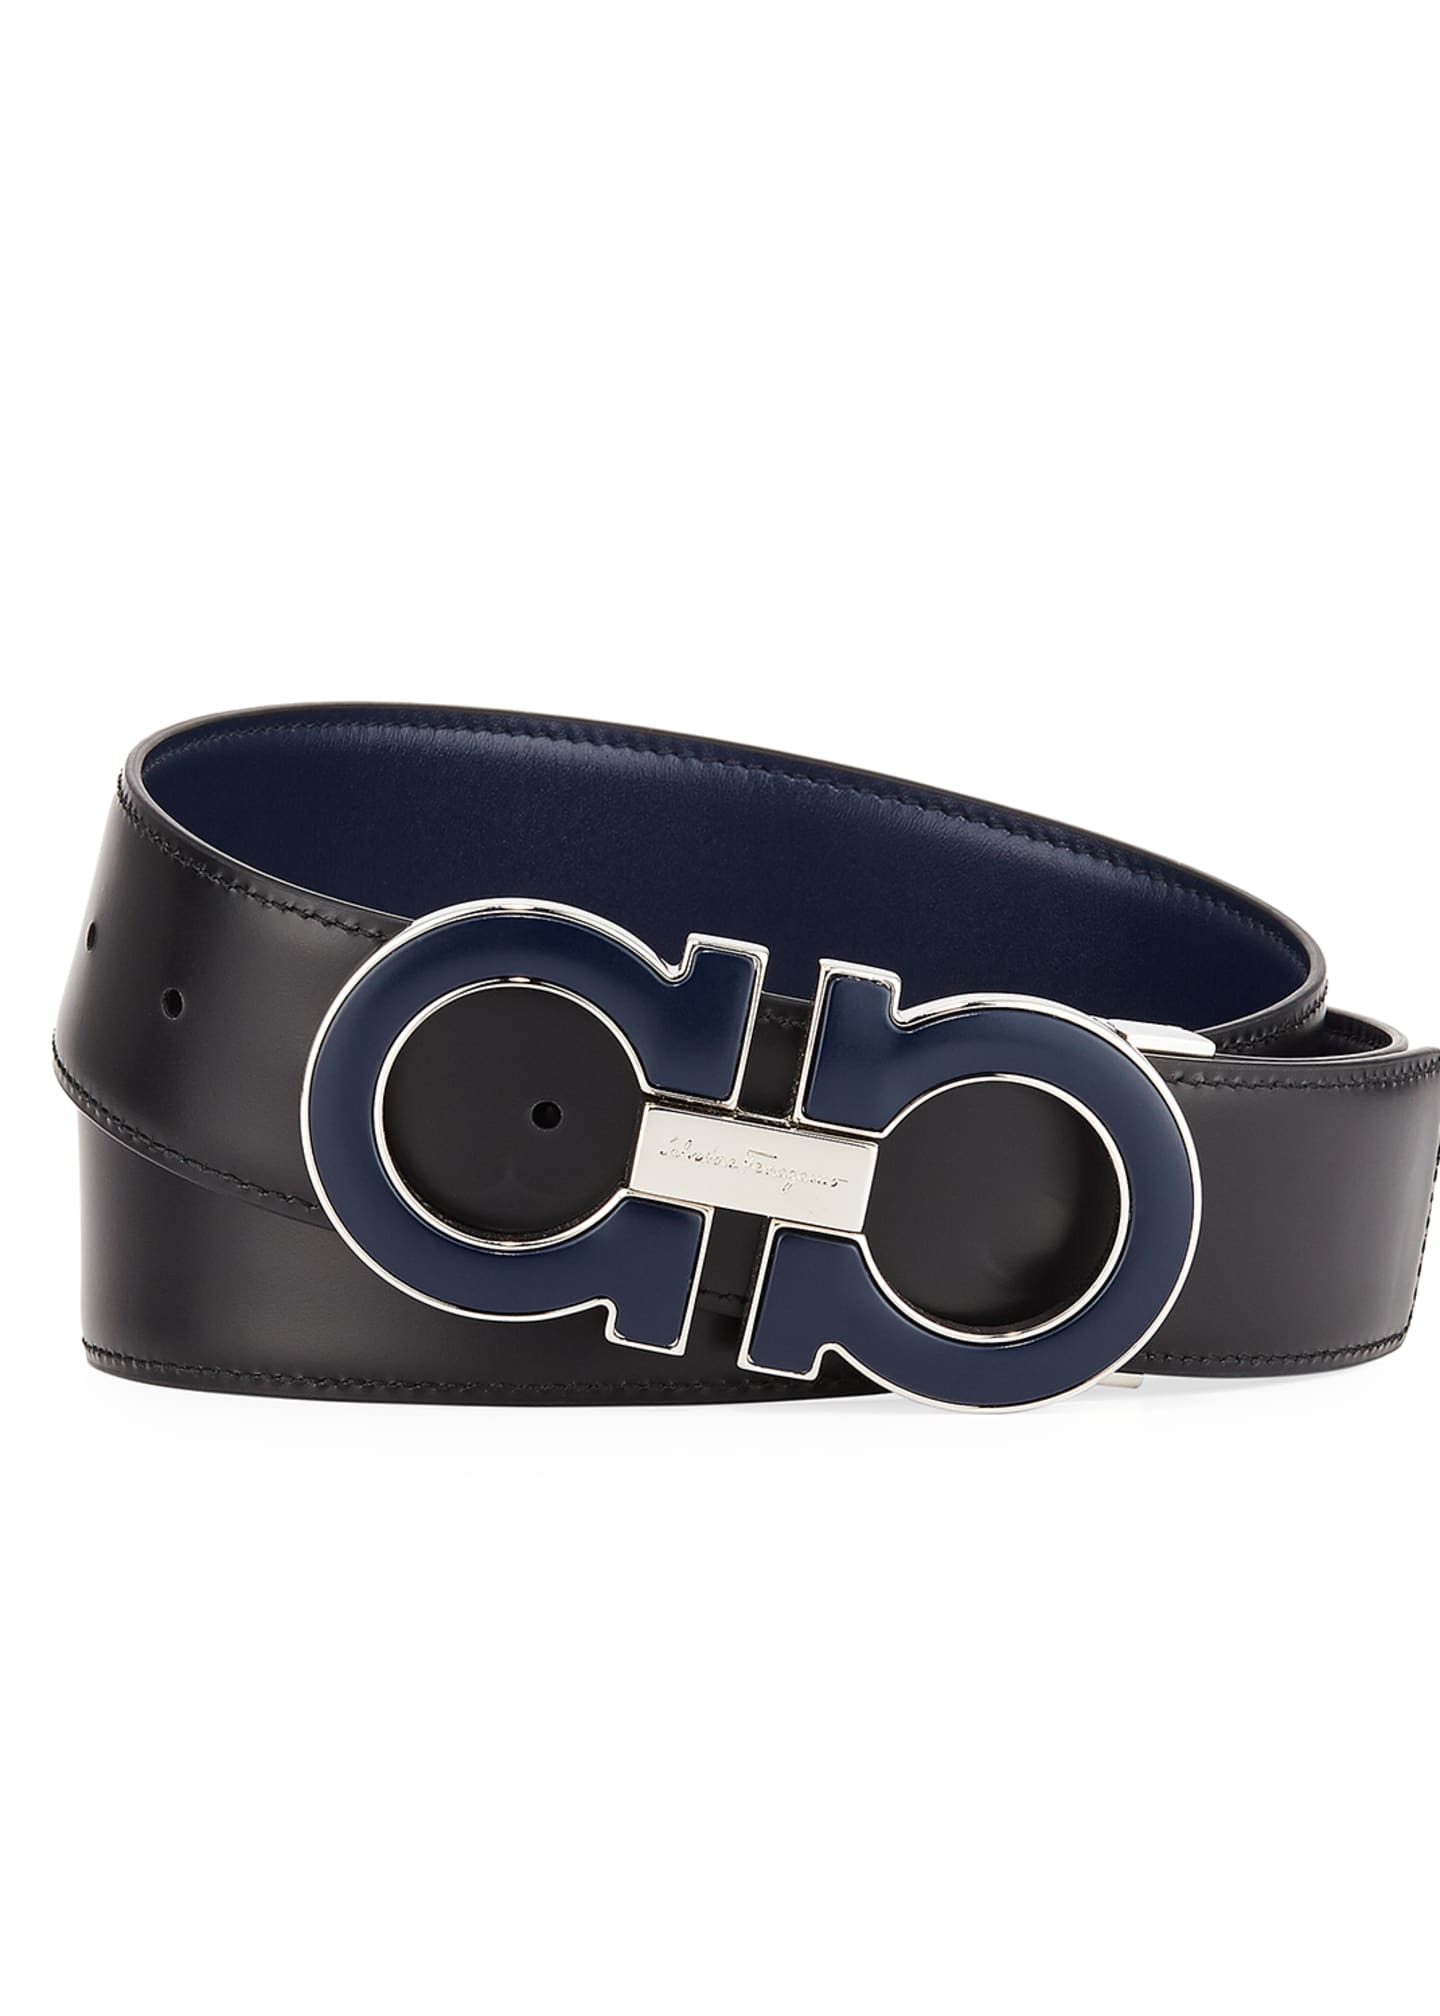 Image 2 of 2: Men's Smooth Calf Reversible Leather Belt